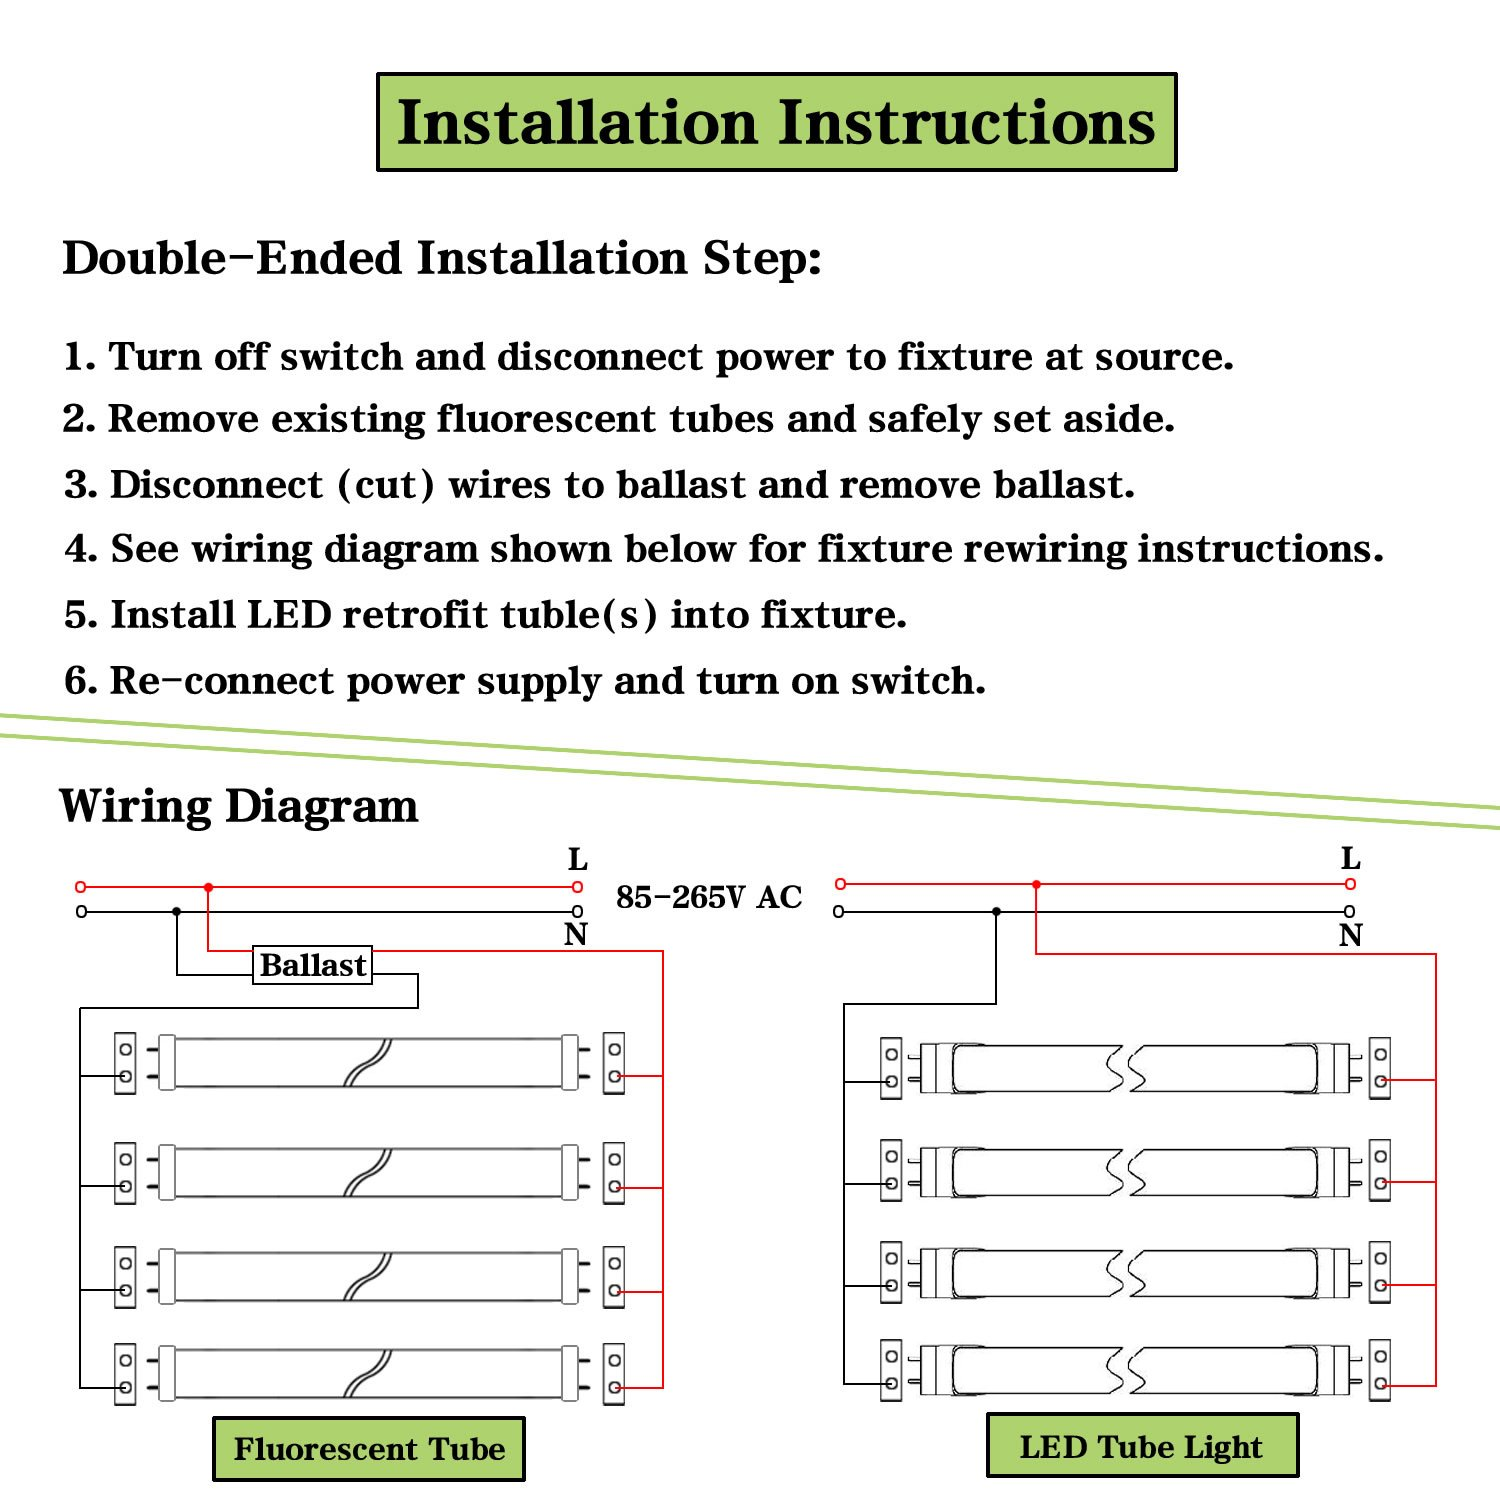 4 Wire Diagram For Led Tube Fixture Wiring Library